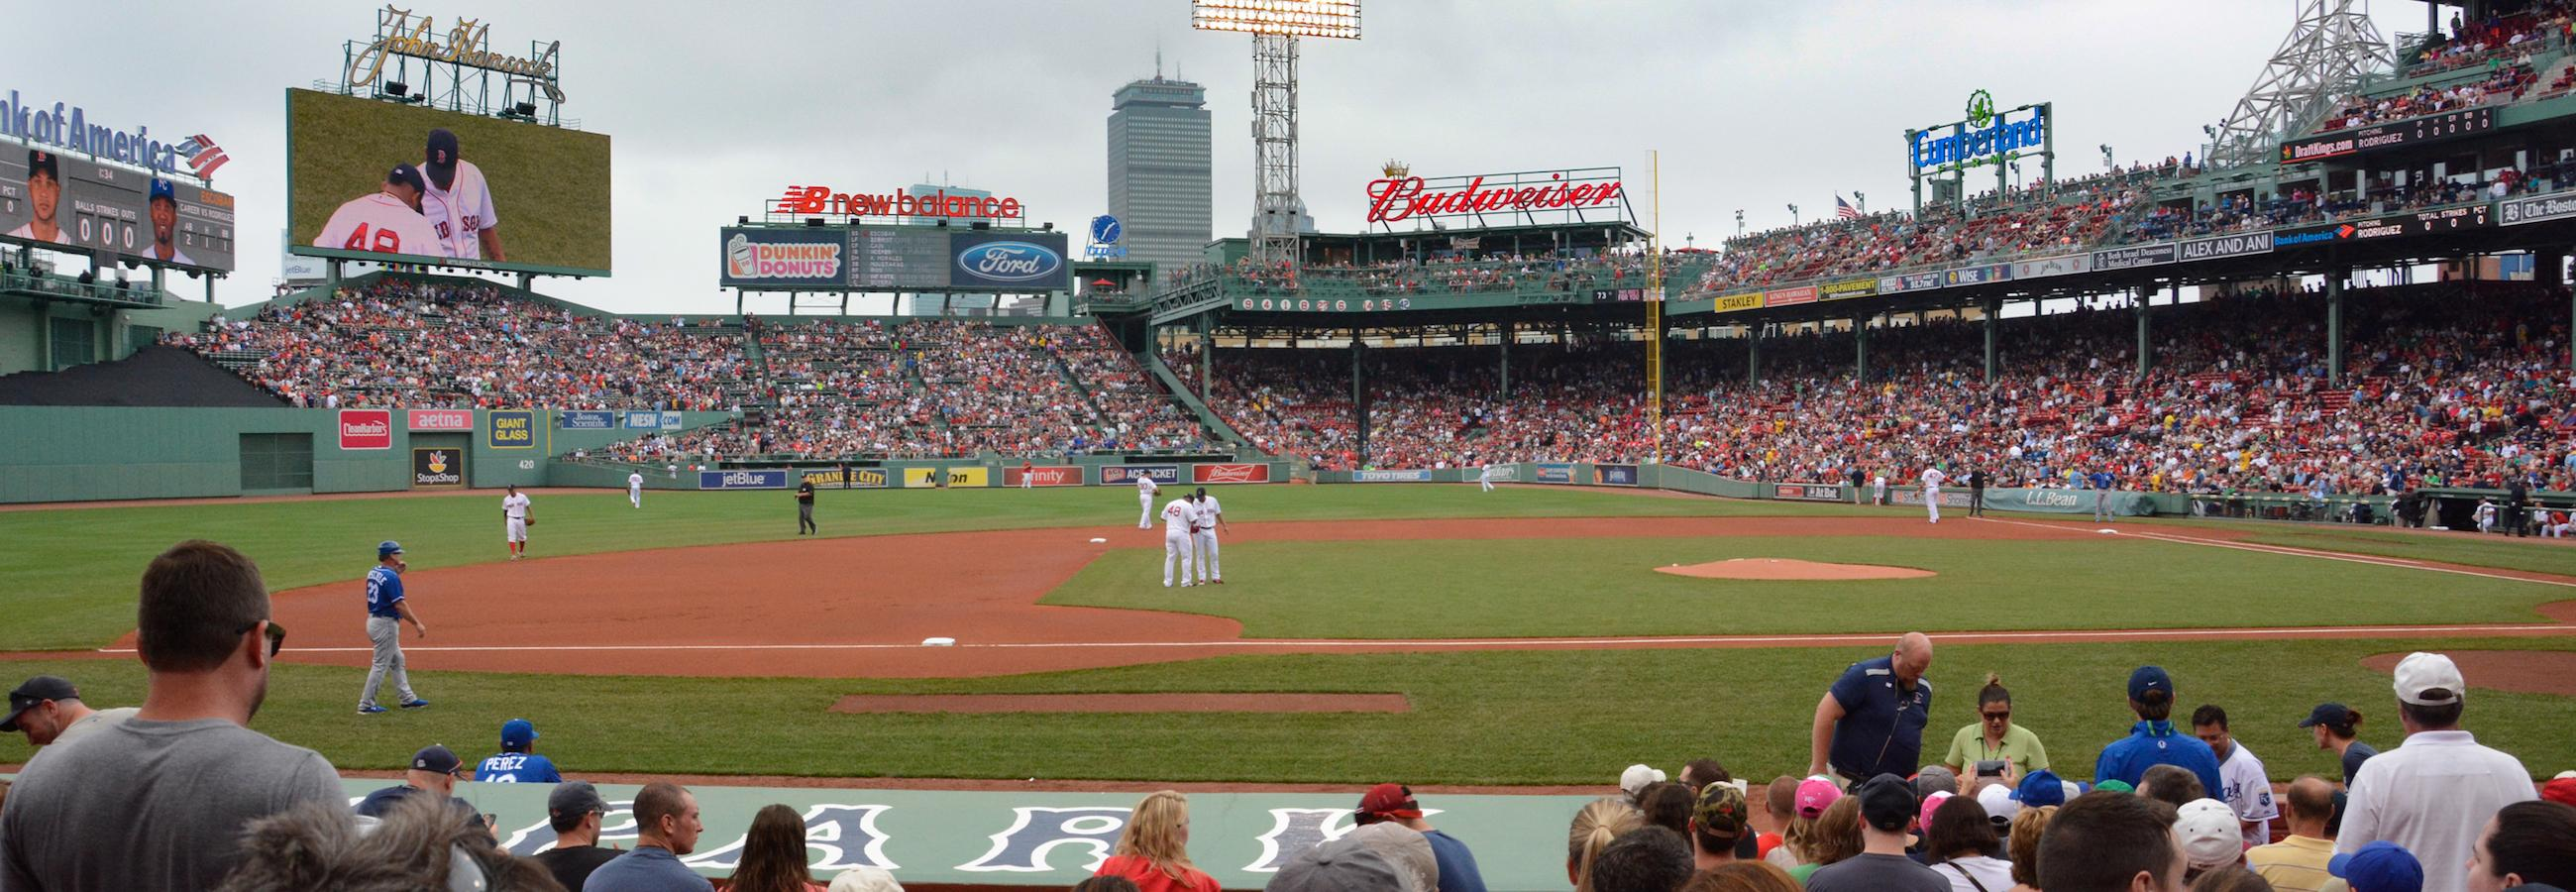 Home red sox game at fenway park